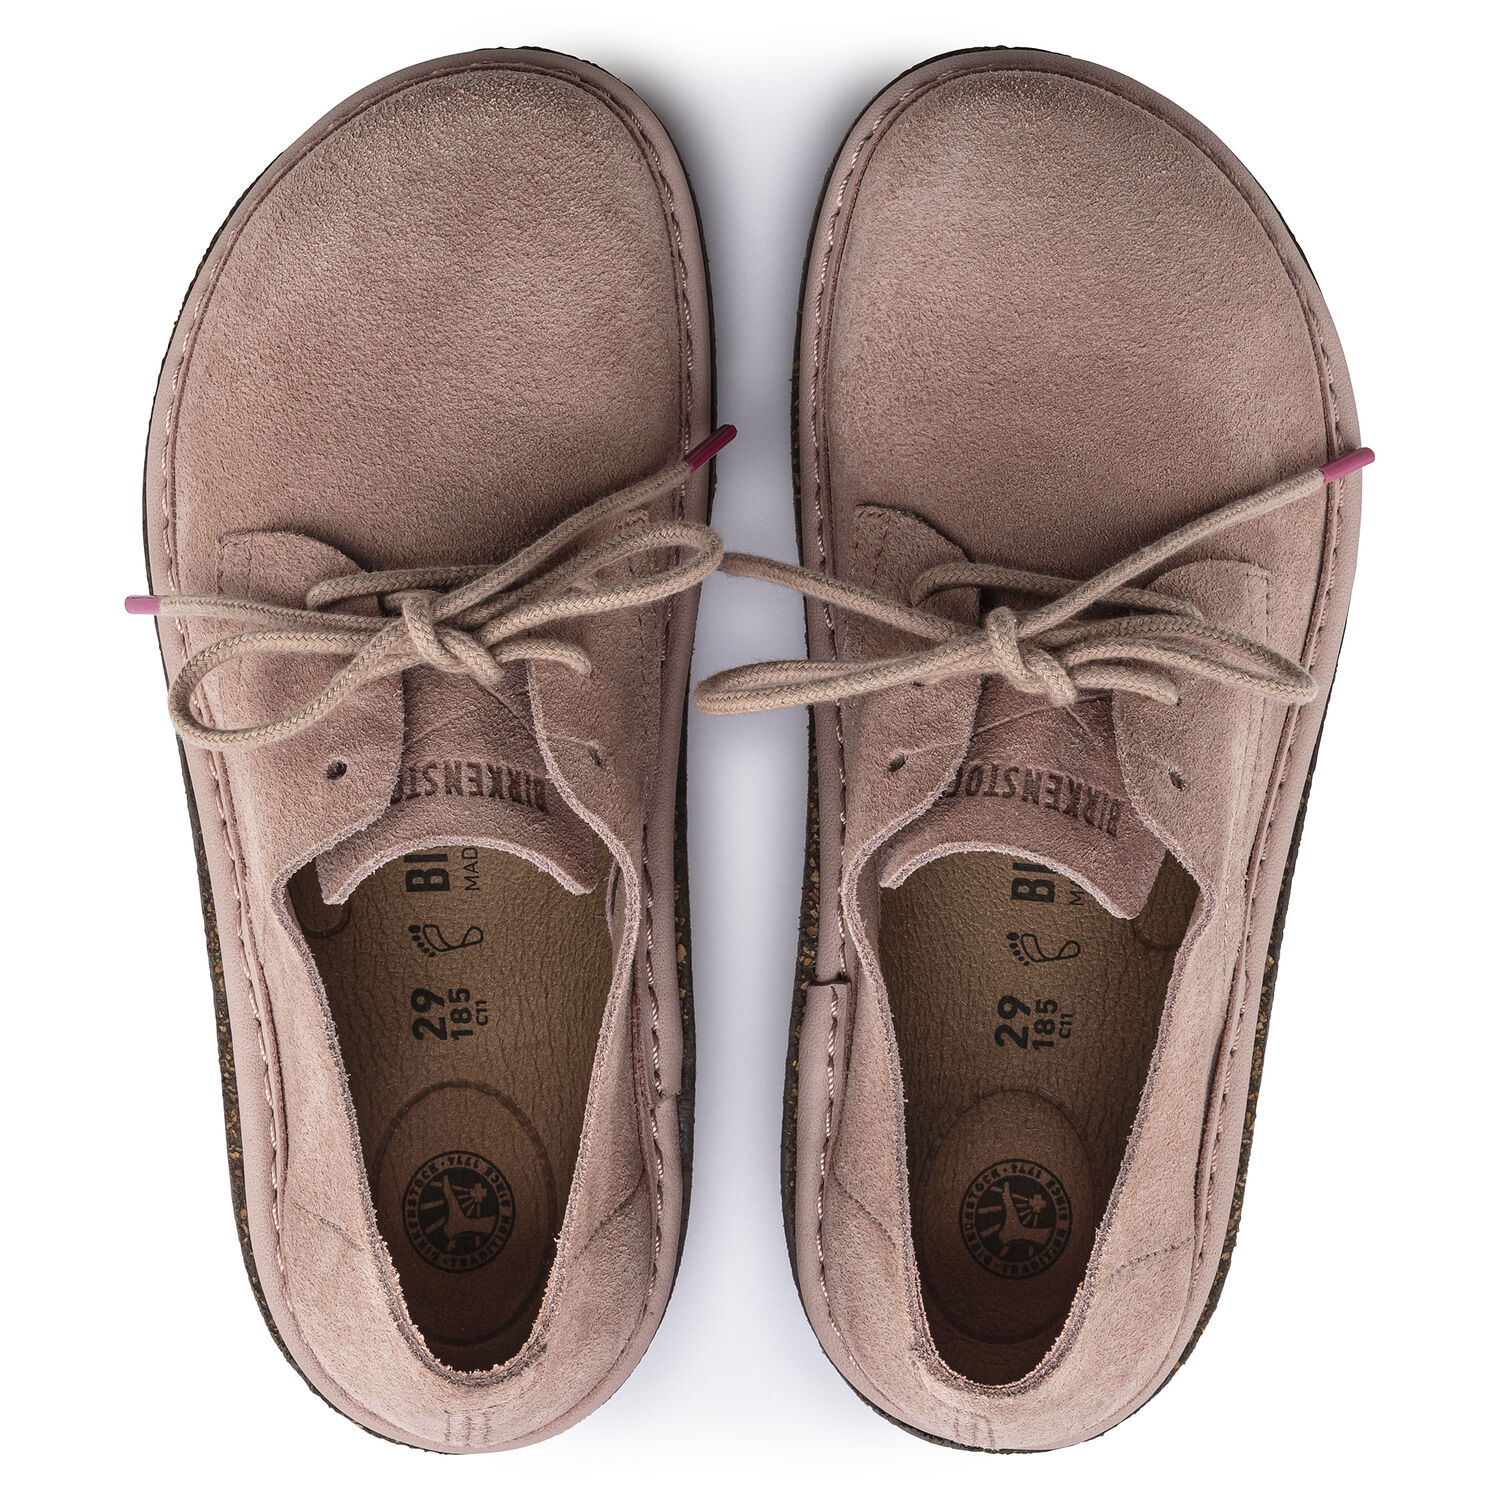 Gary Kids Suede Leather